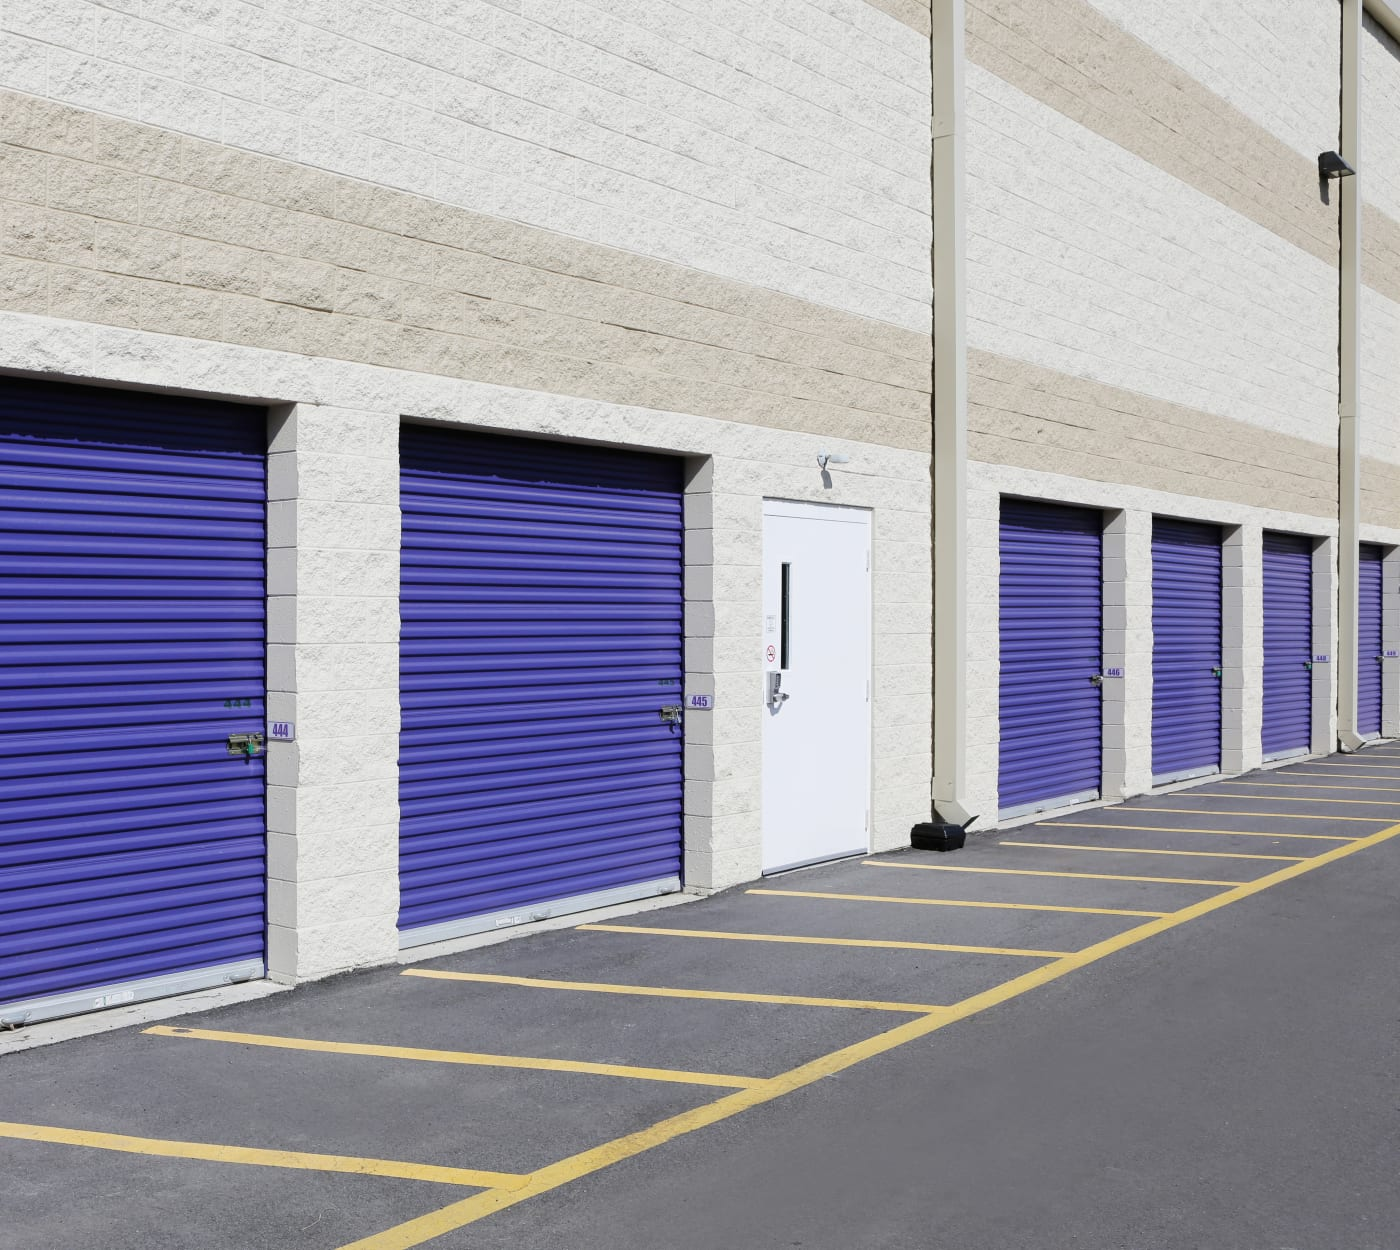 Ground-floor units at StoreSmart Self-Storage in Durham, North Carolina